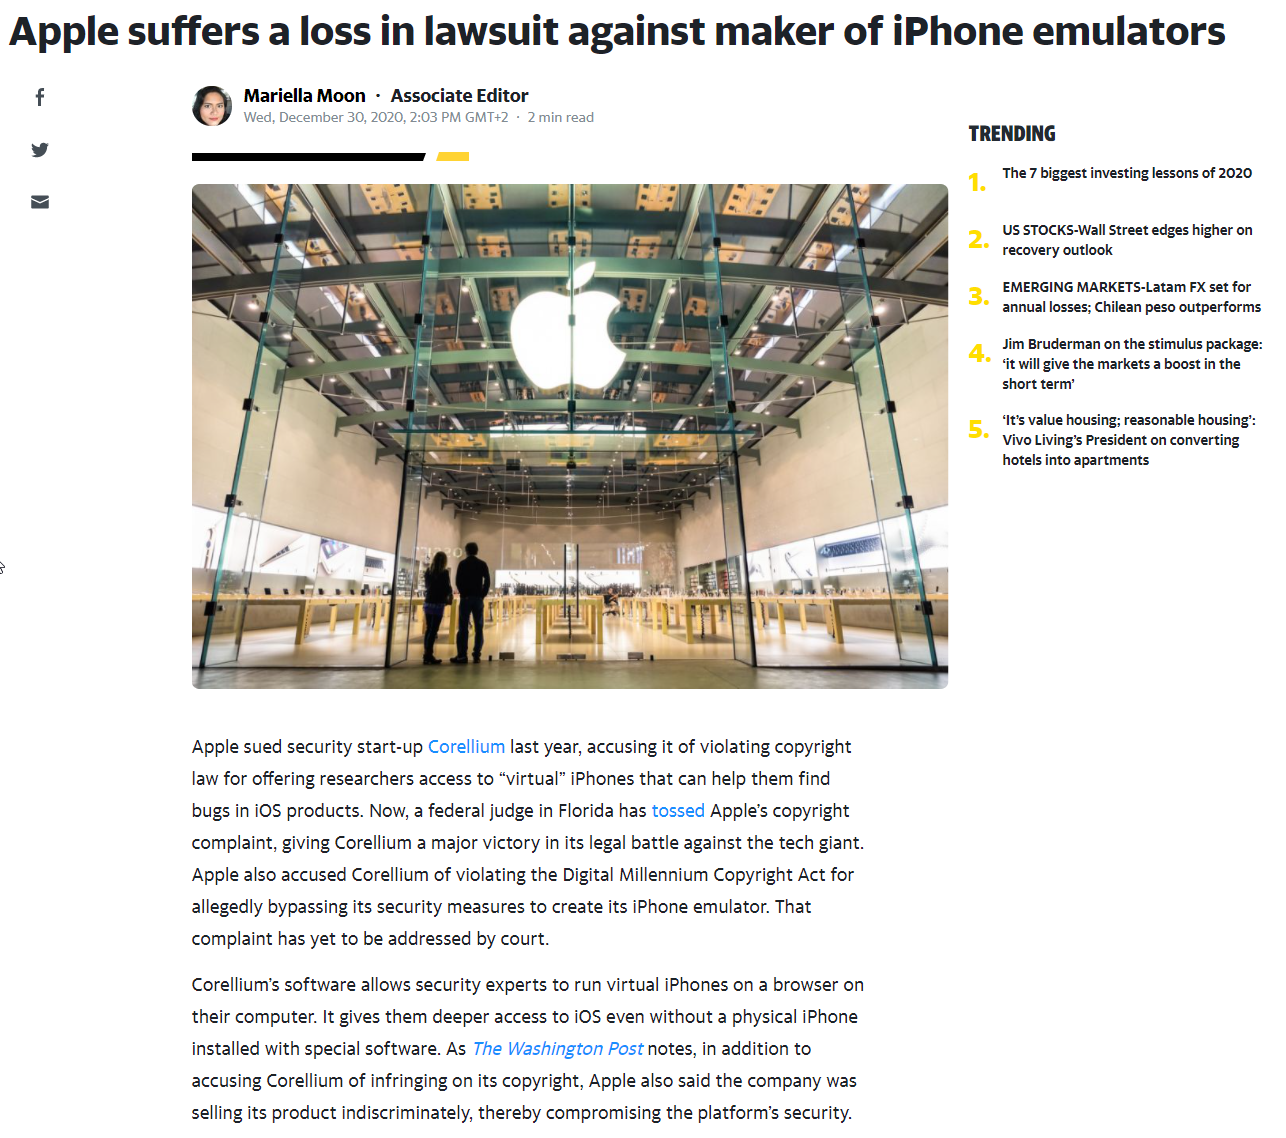 Apple suffers a loss in lawsuit against maker of iPhone emulators